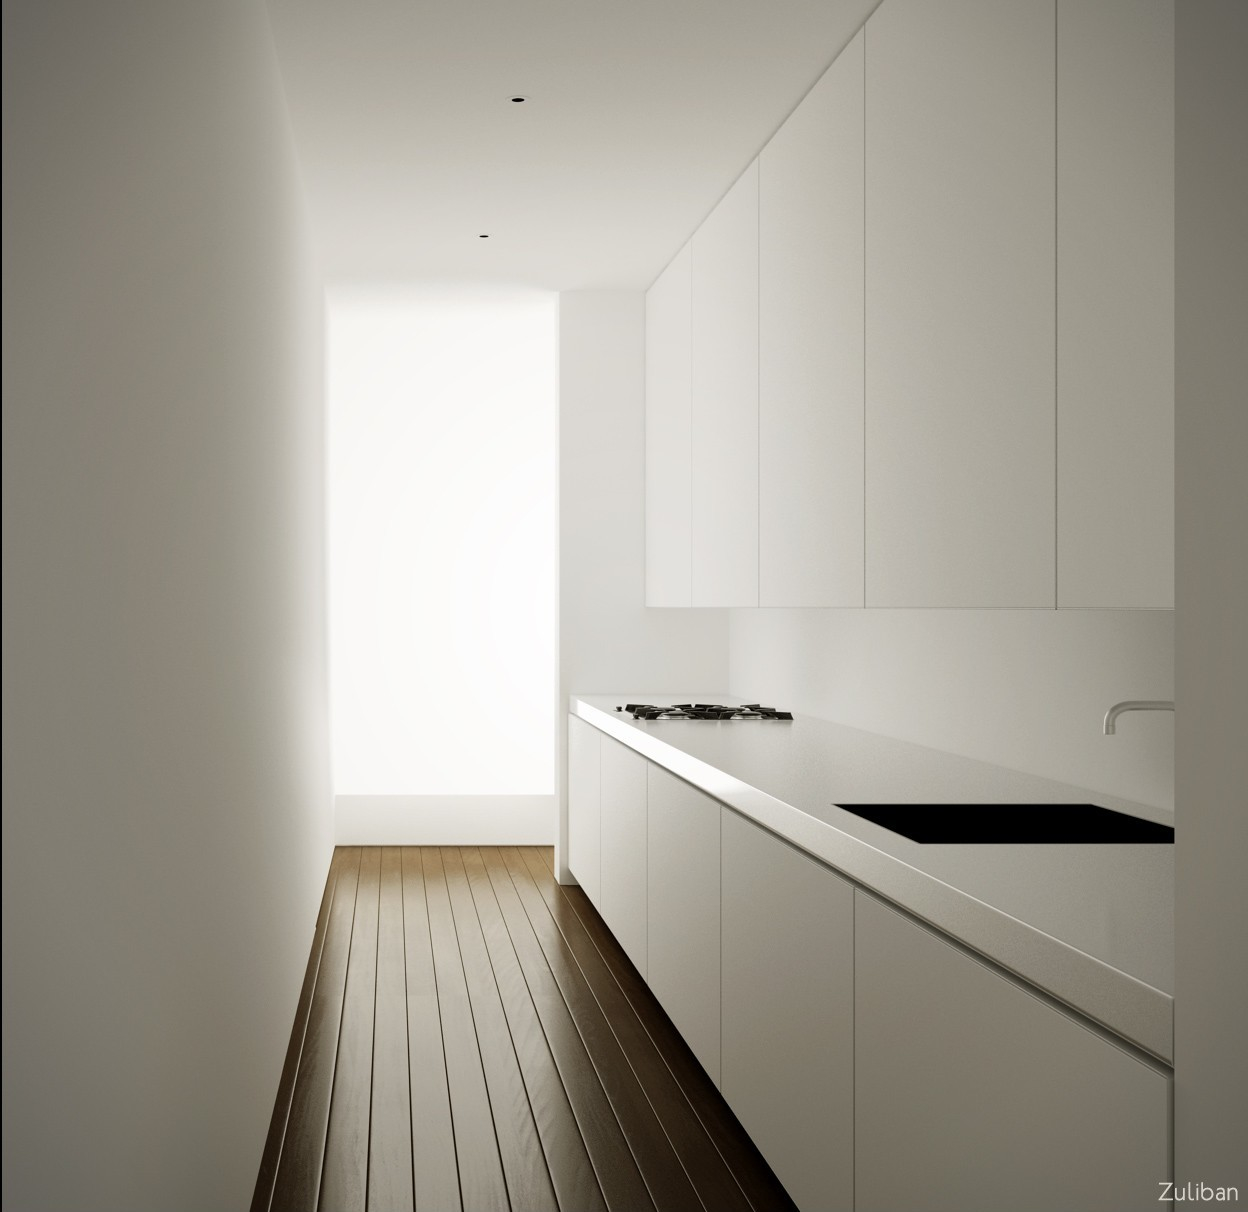 Zuliban minimal kitchen 1 e9b7e22b z023